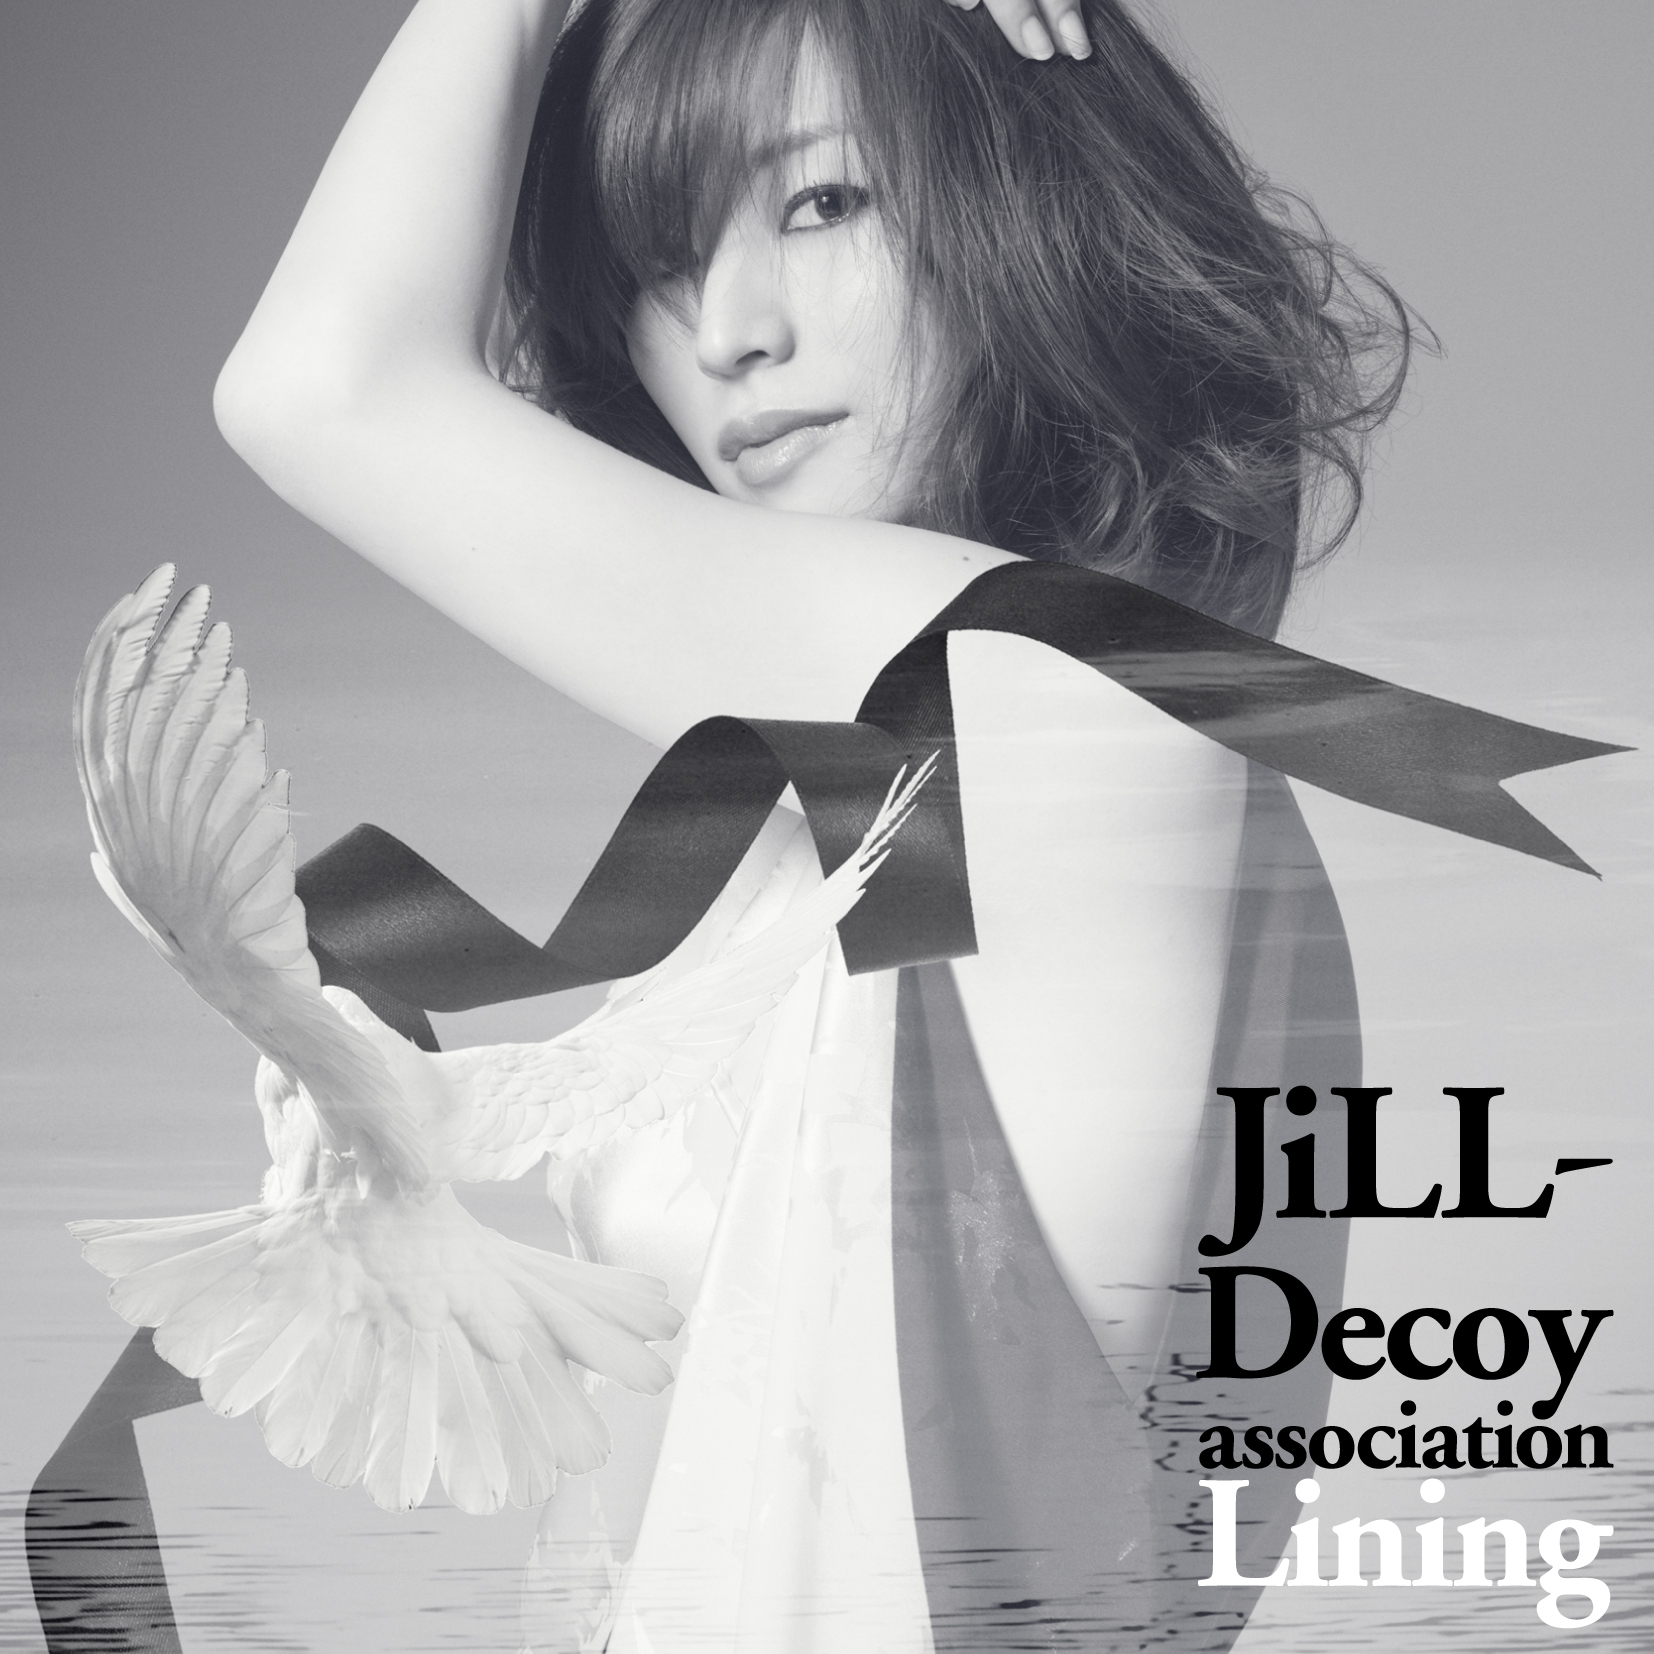 JiLL-Decoy association 「Lining」